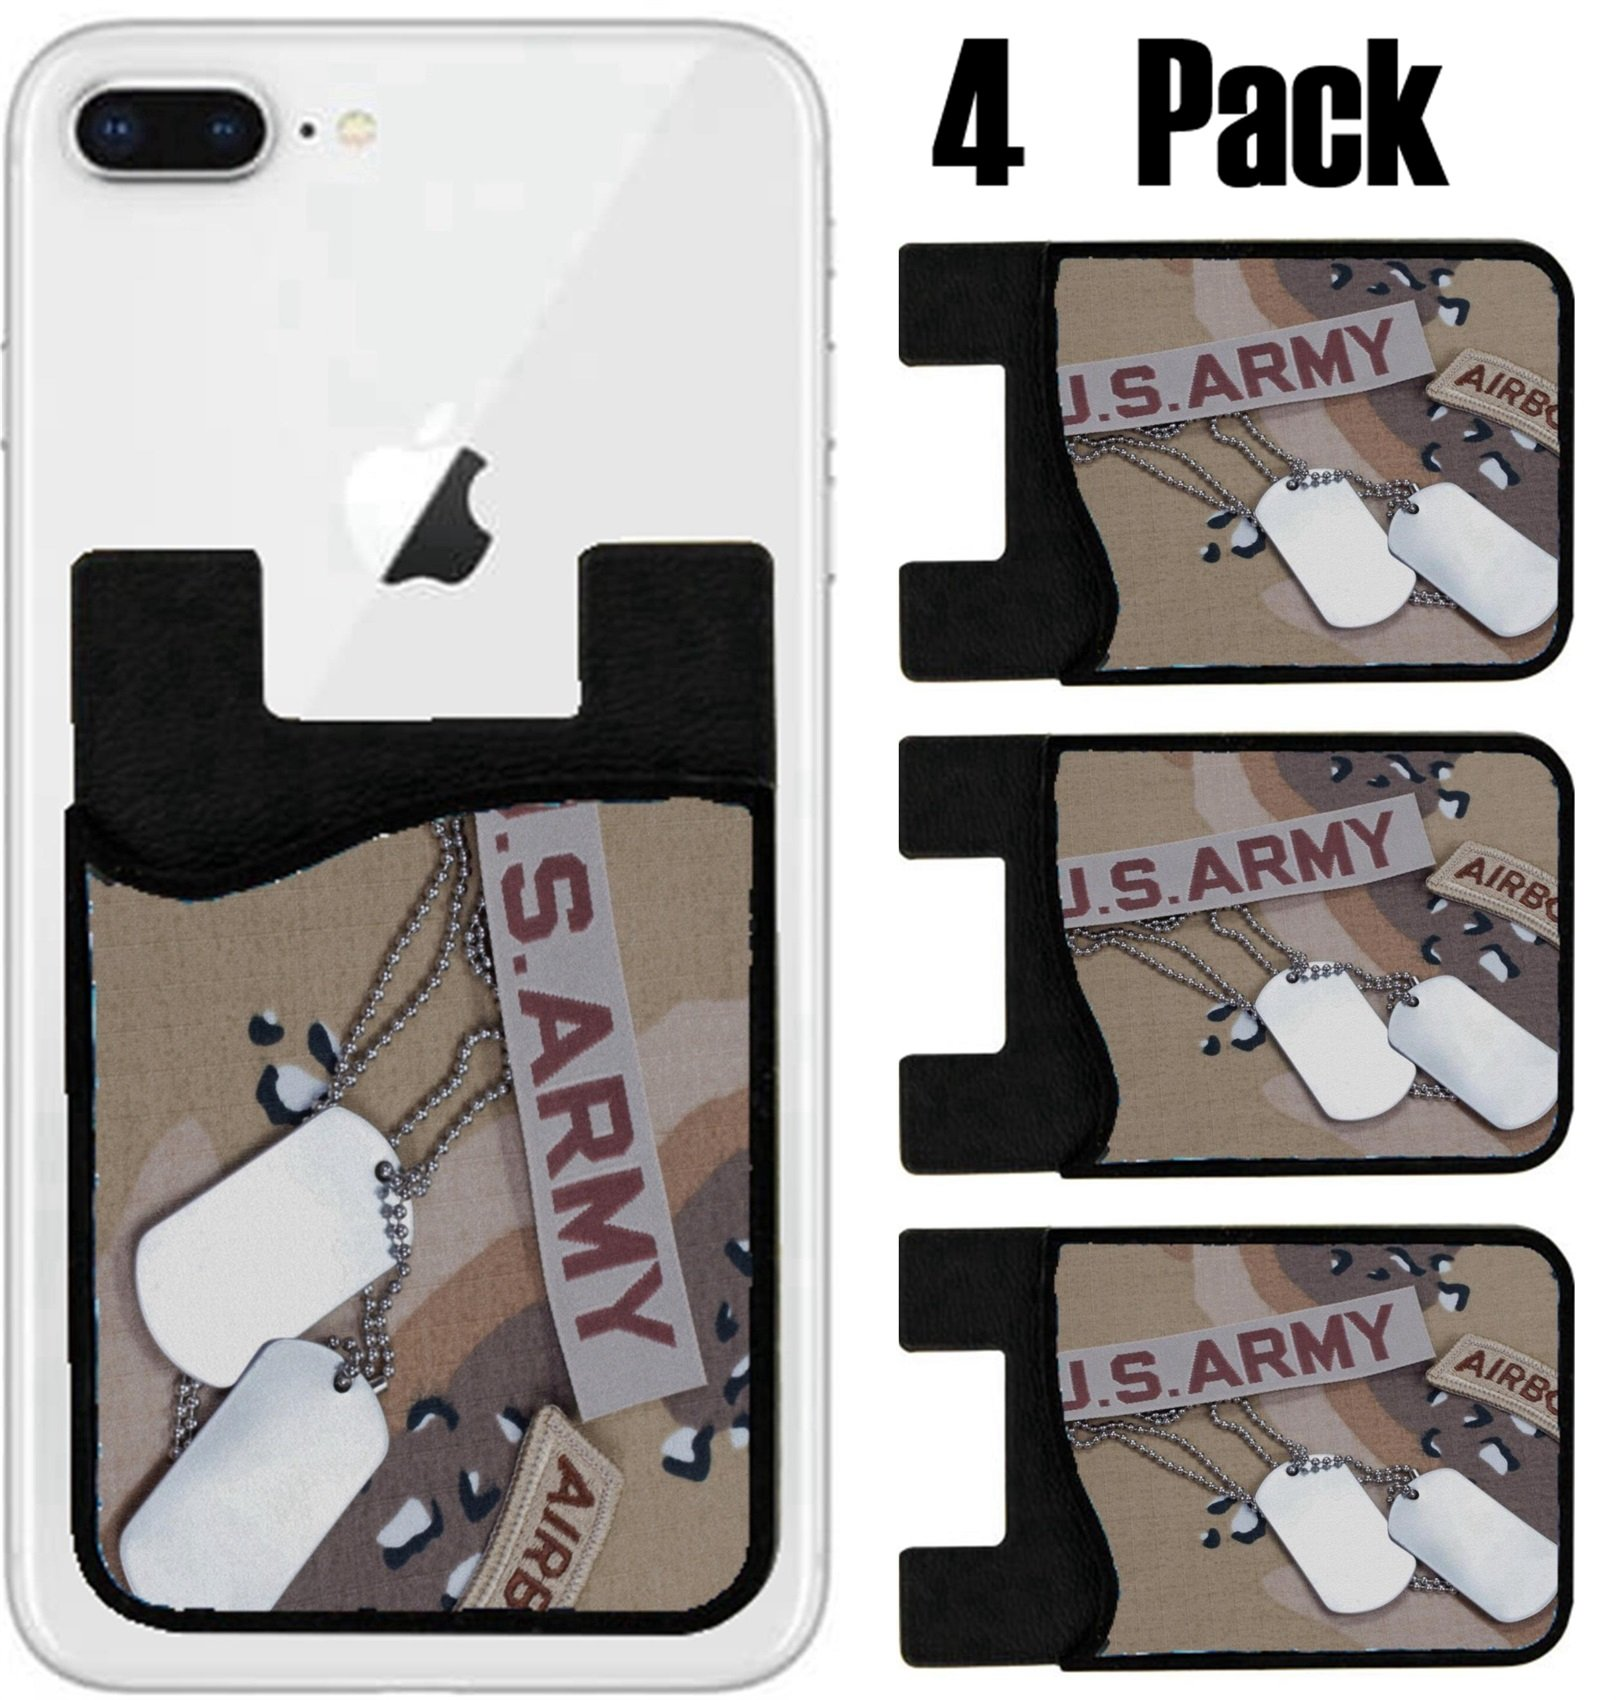 MSD Phone Card holder, sleeve/wallet for iPhone Samsung Android and all smartphones with removable microfiber screen cleaner Silicone card Caddy(4 Pack) US ARMY airborne tab with blank dog tags on cam